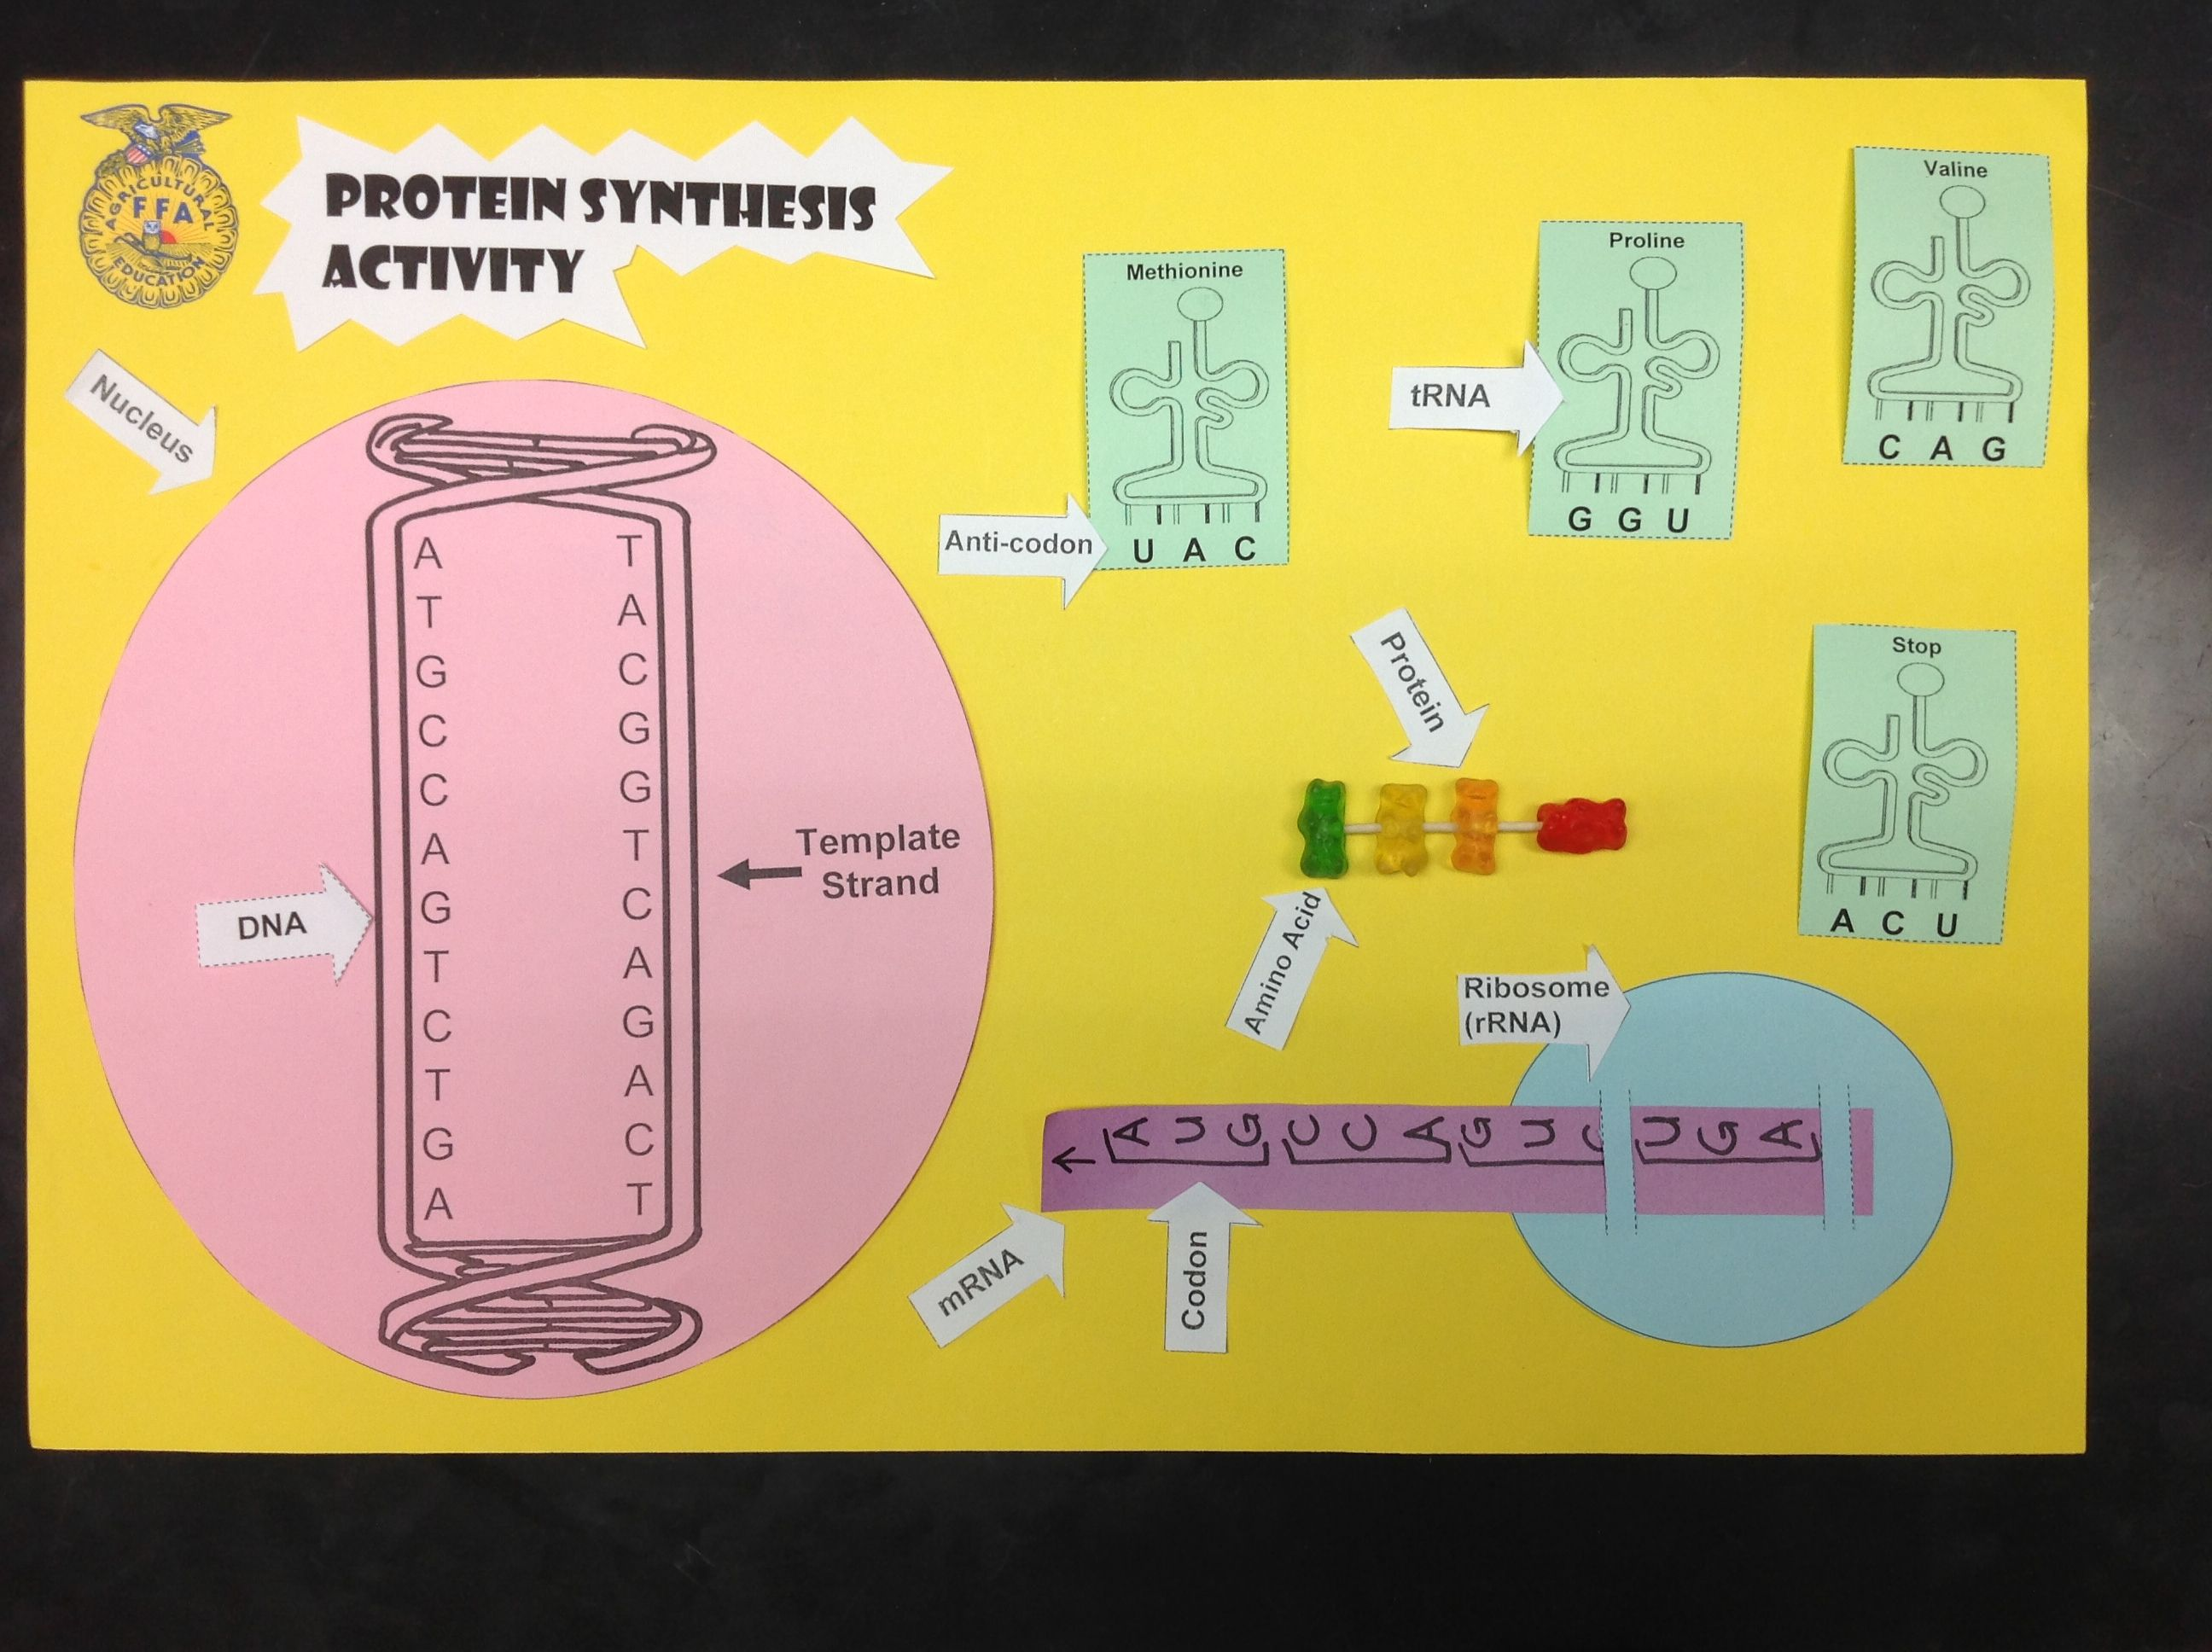 Check Out This Protein Synthesis Activity I Created For My Ag